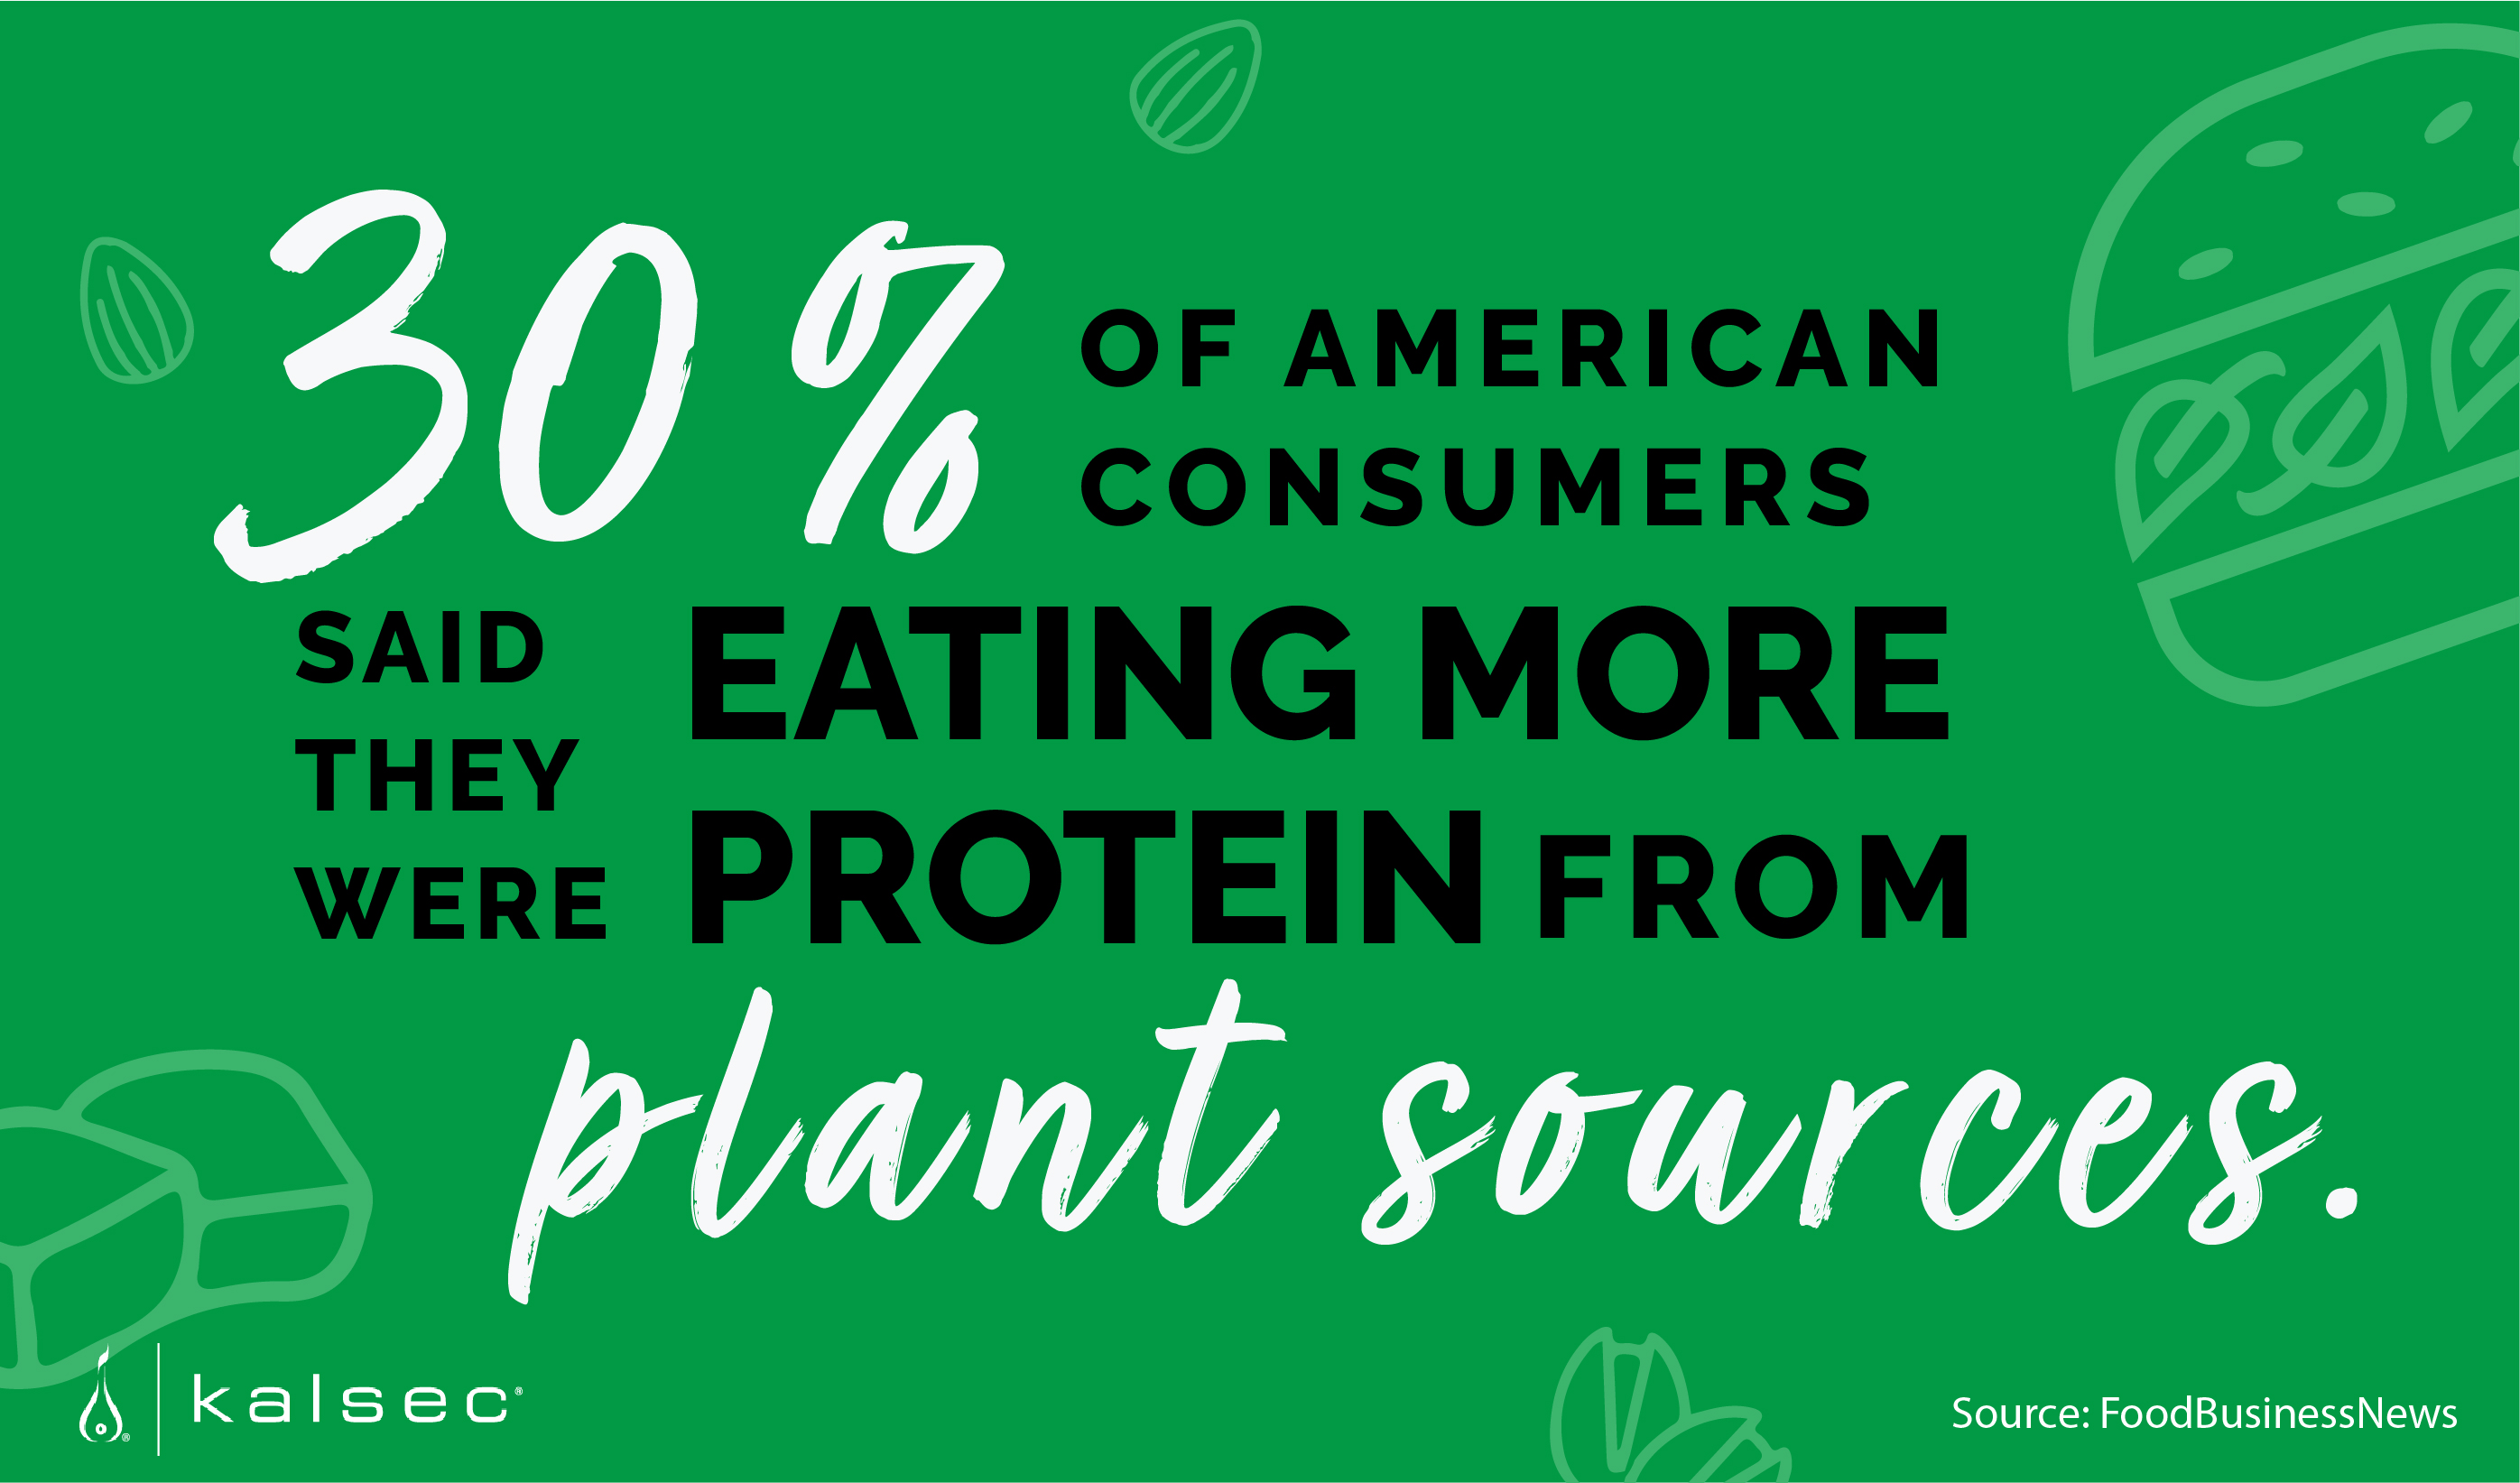 30% of American consumers said they were eating more protein from plant sources.